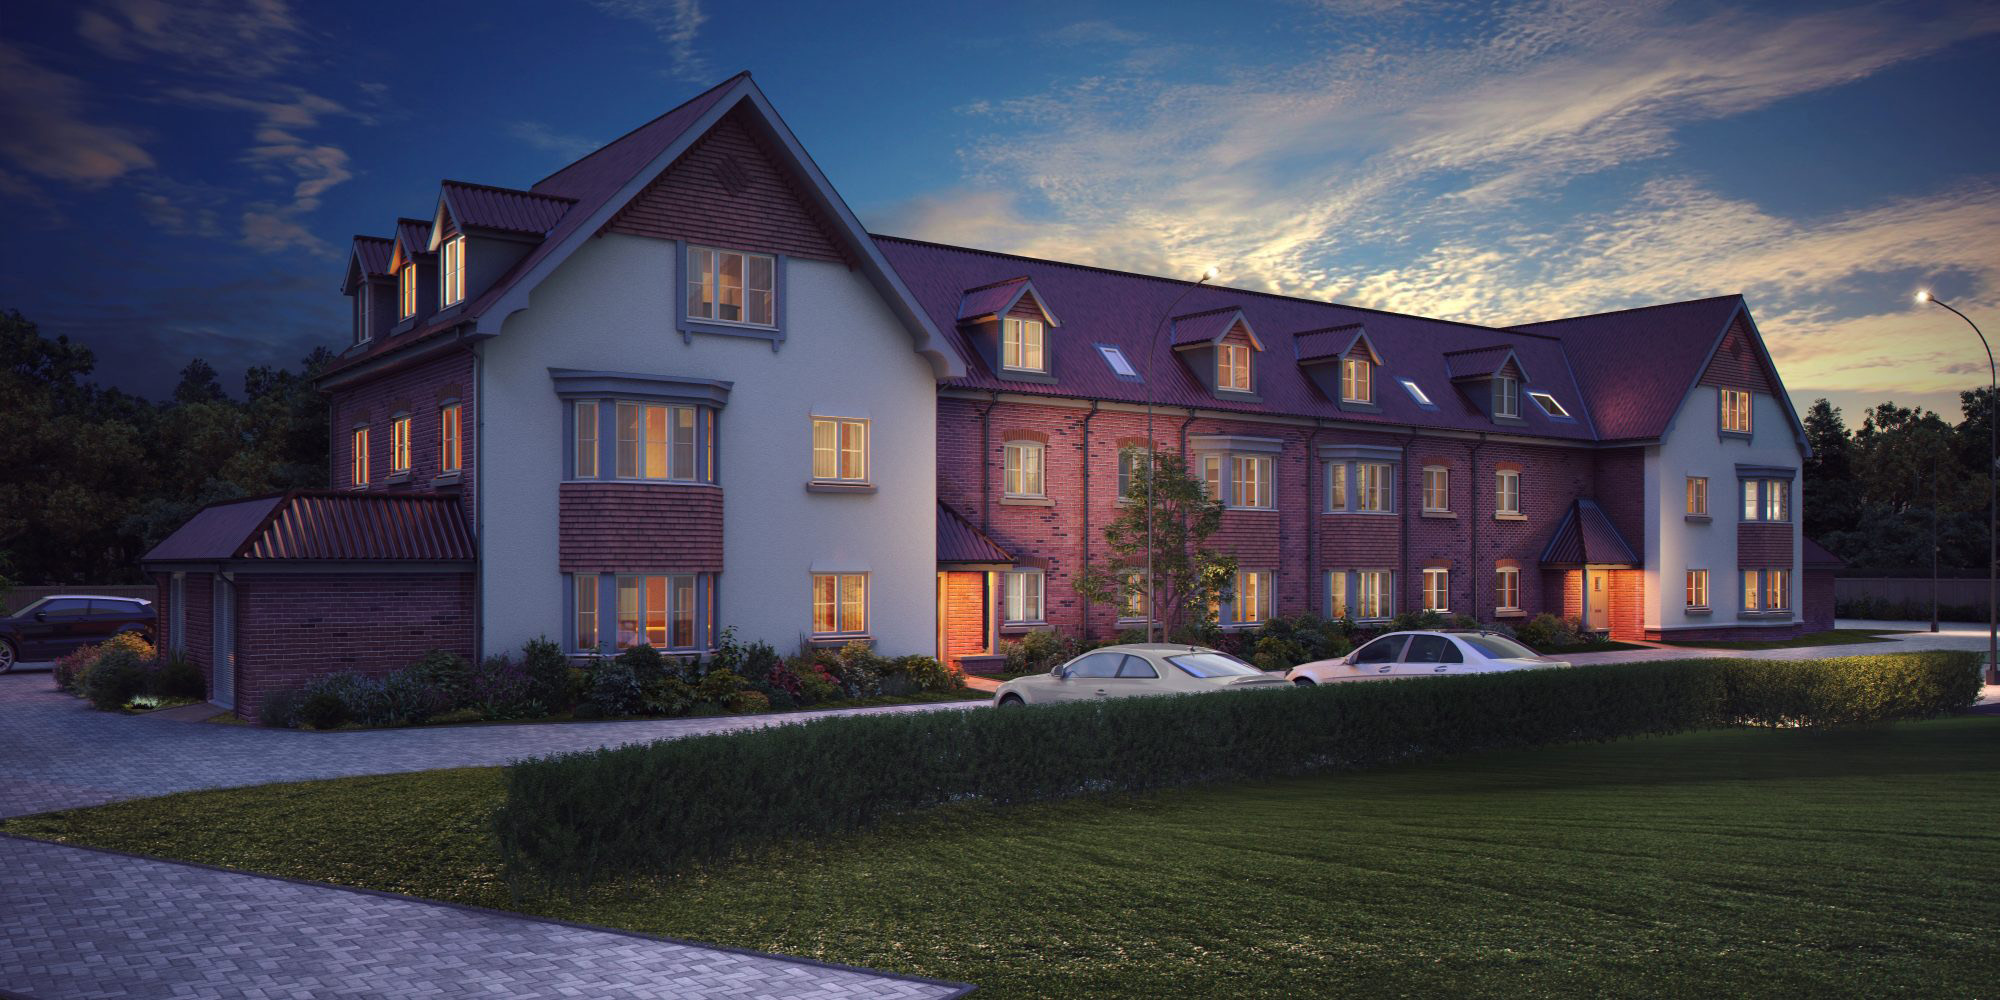 Silent Garden Liphook Is A New And Exciting Development In